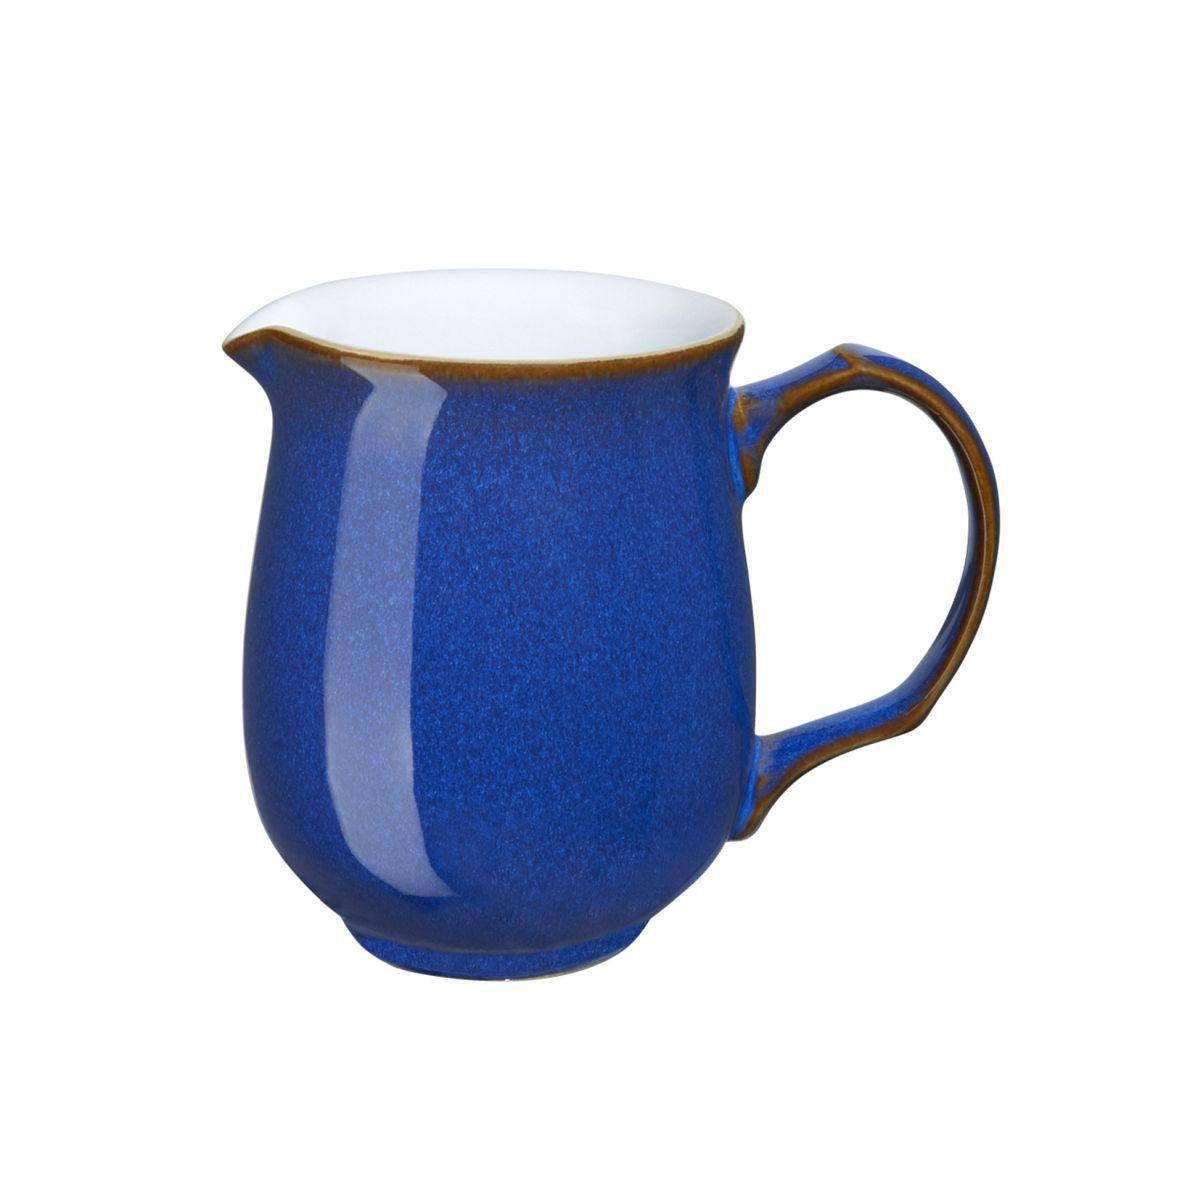 101499955101499980: Imperial Blue Jug Small